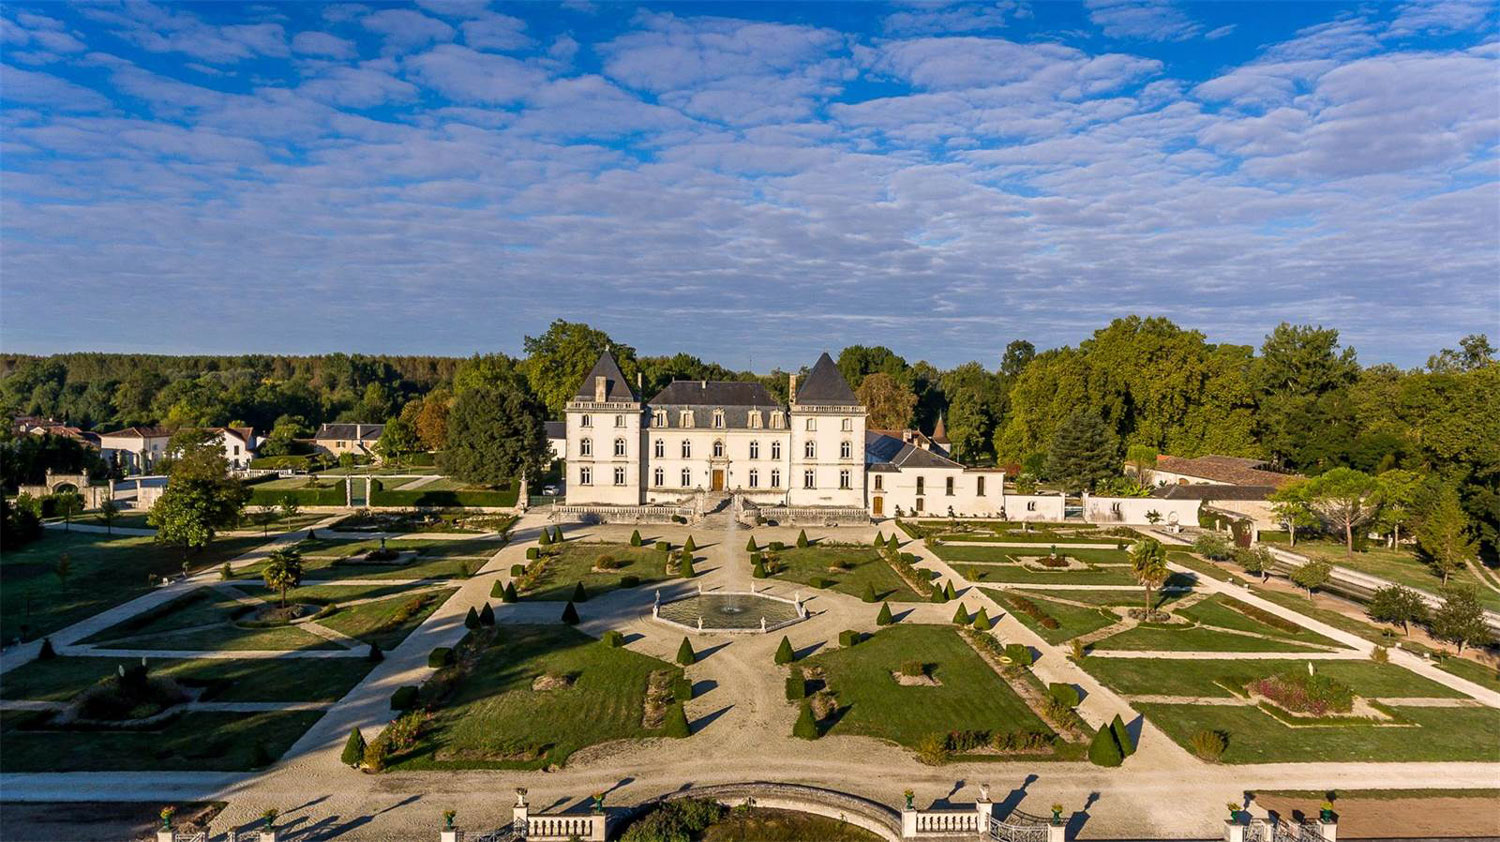 One of the finest properties in France, this historic château is set like a jewel amid 104 acres of glorious grounds replete with classical formal gardens and a hunting preserve.